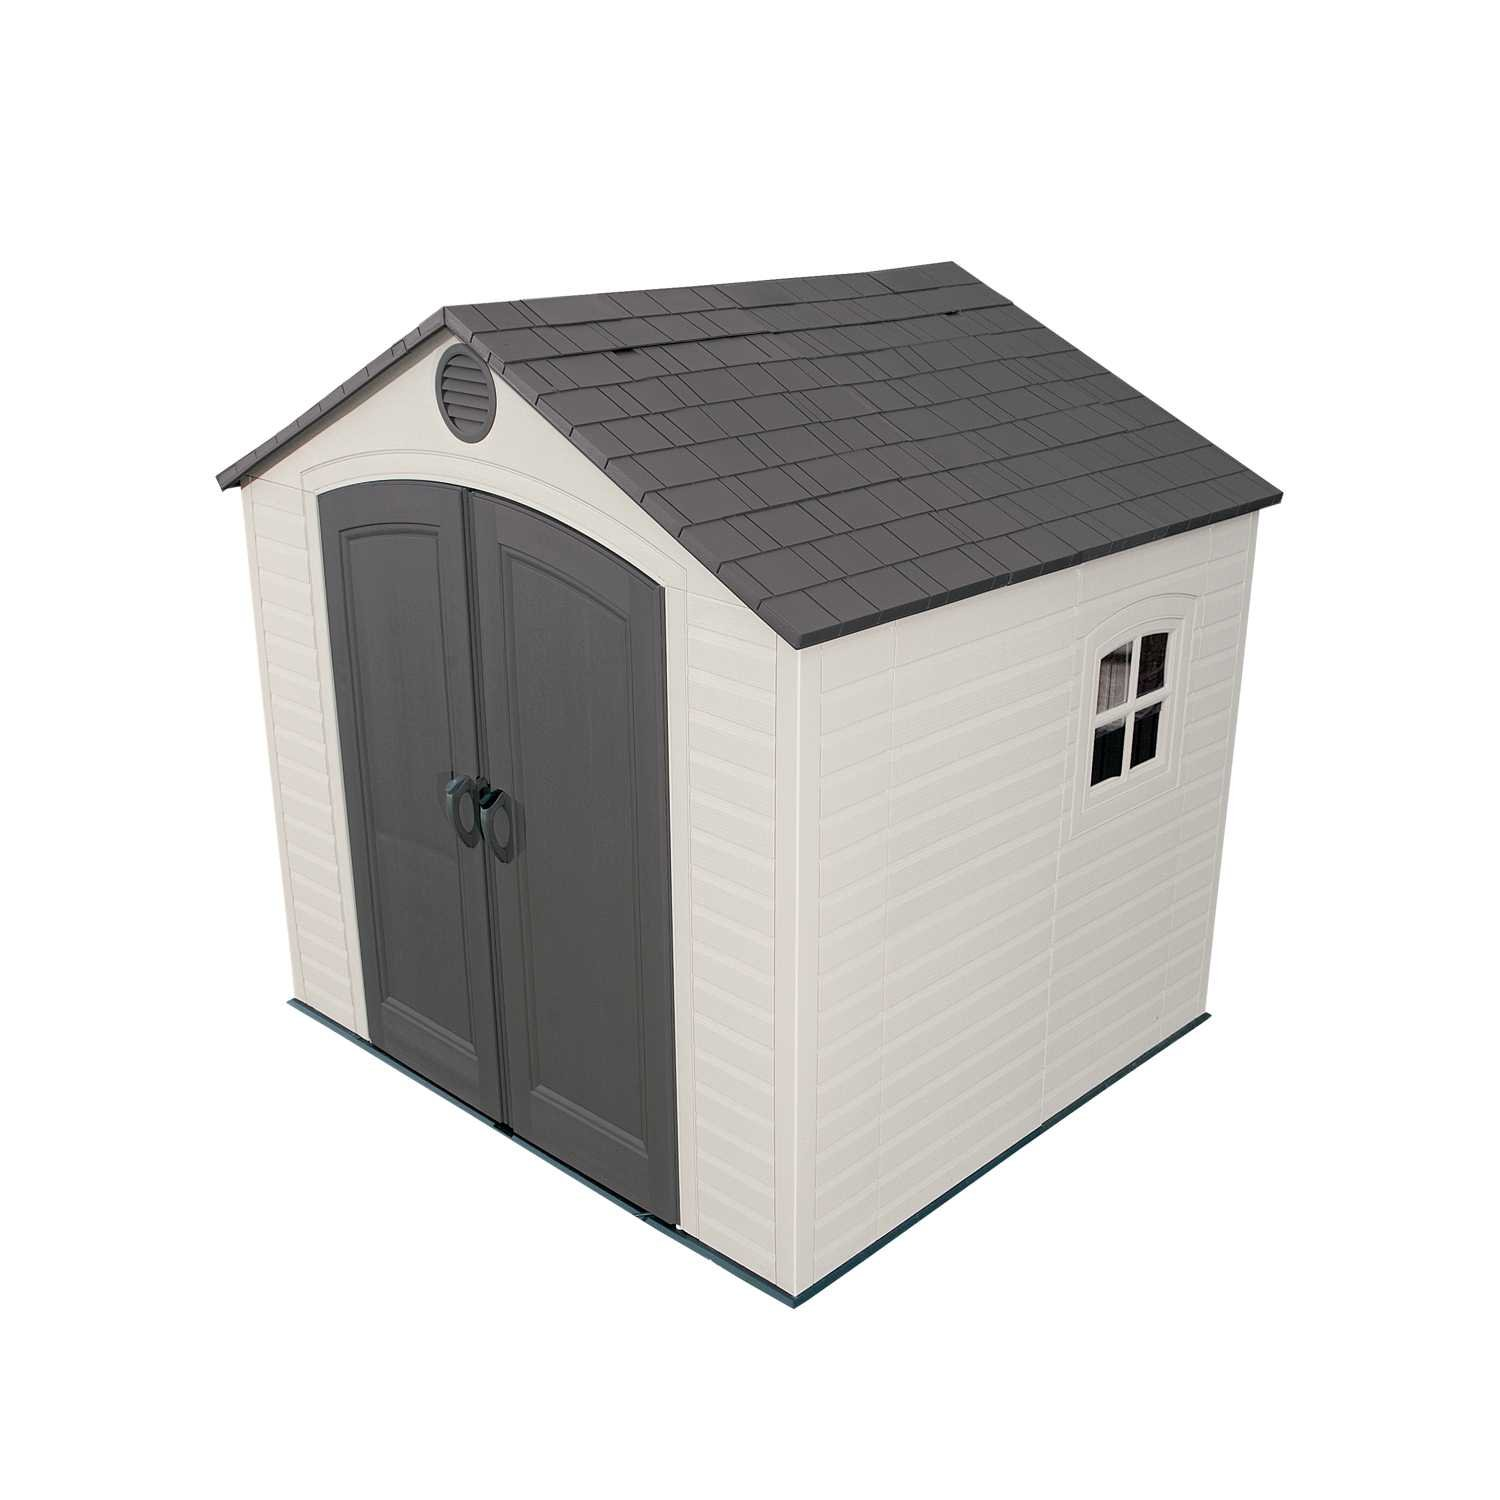 amazon com lifetime 6411 outdoor storage shed with window 8 by